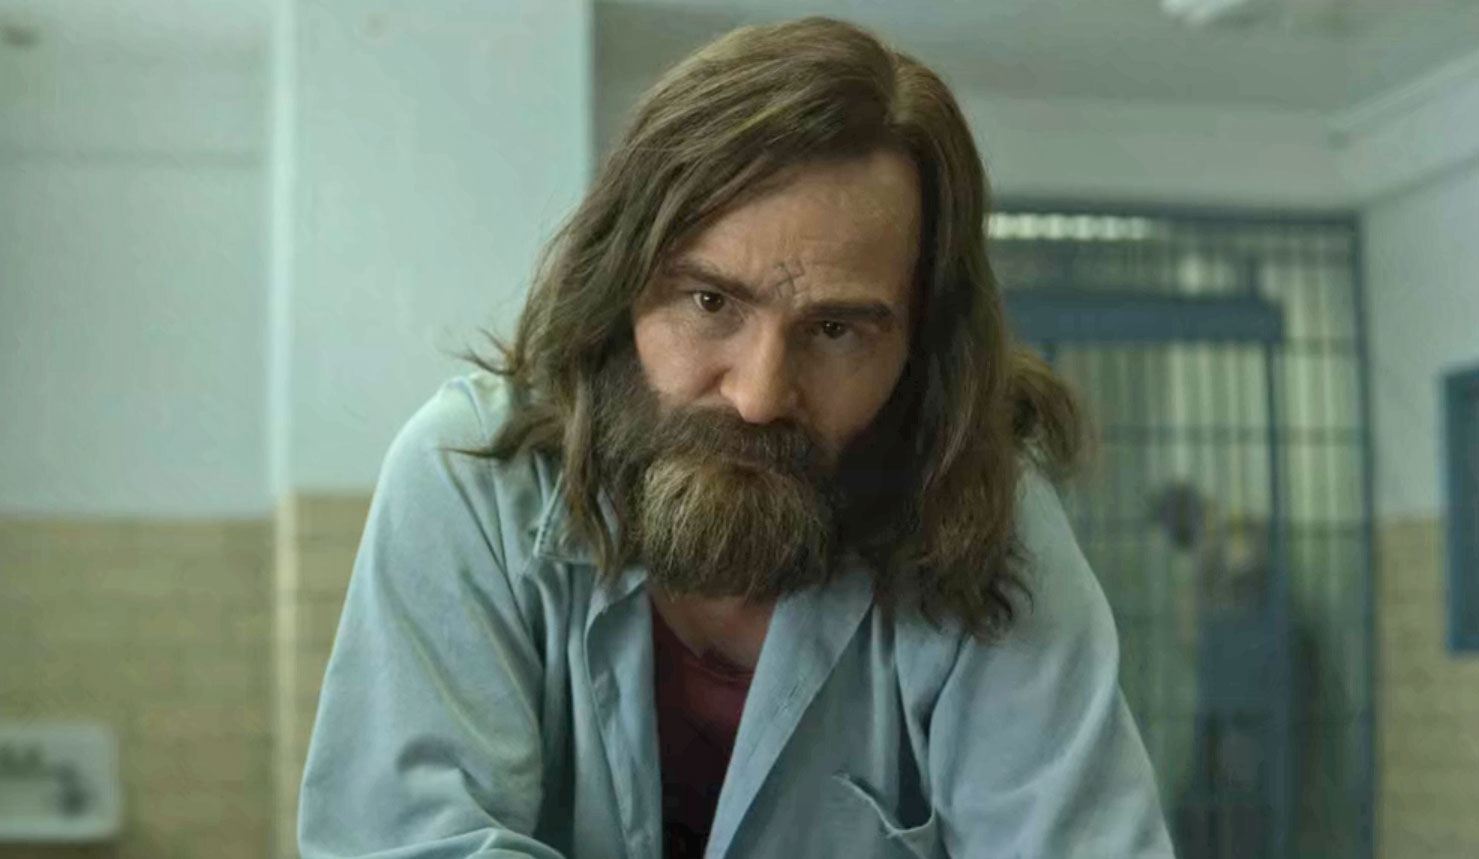 Will Damon Herriman ('Mindhunter') make a killing at the Emmys after playing Charles Manson TWICE last year?